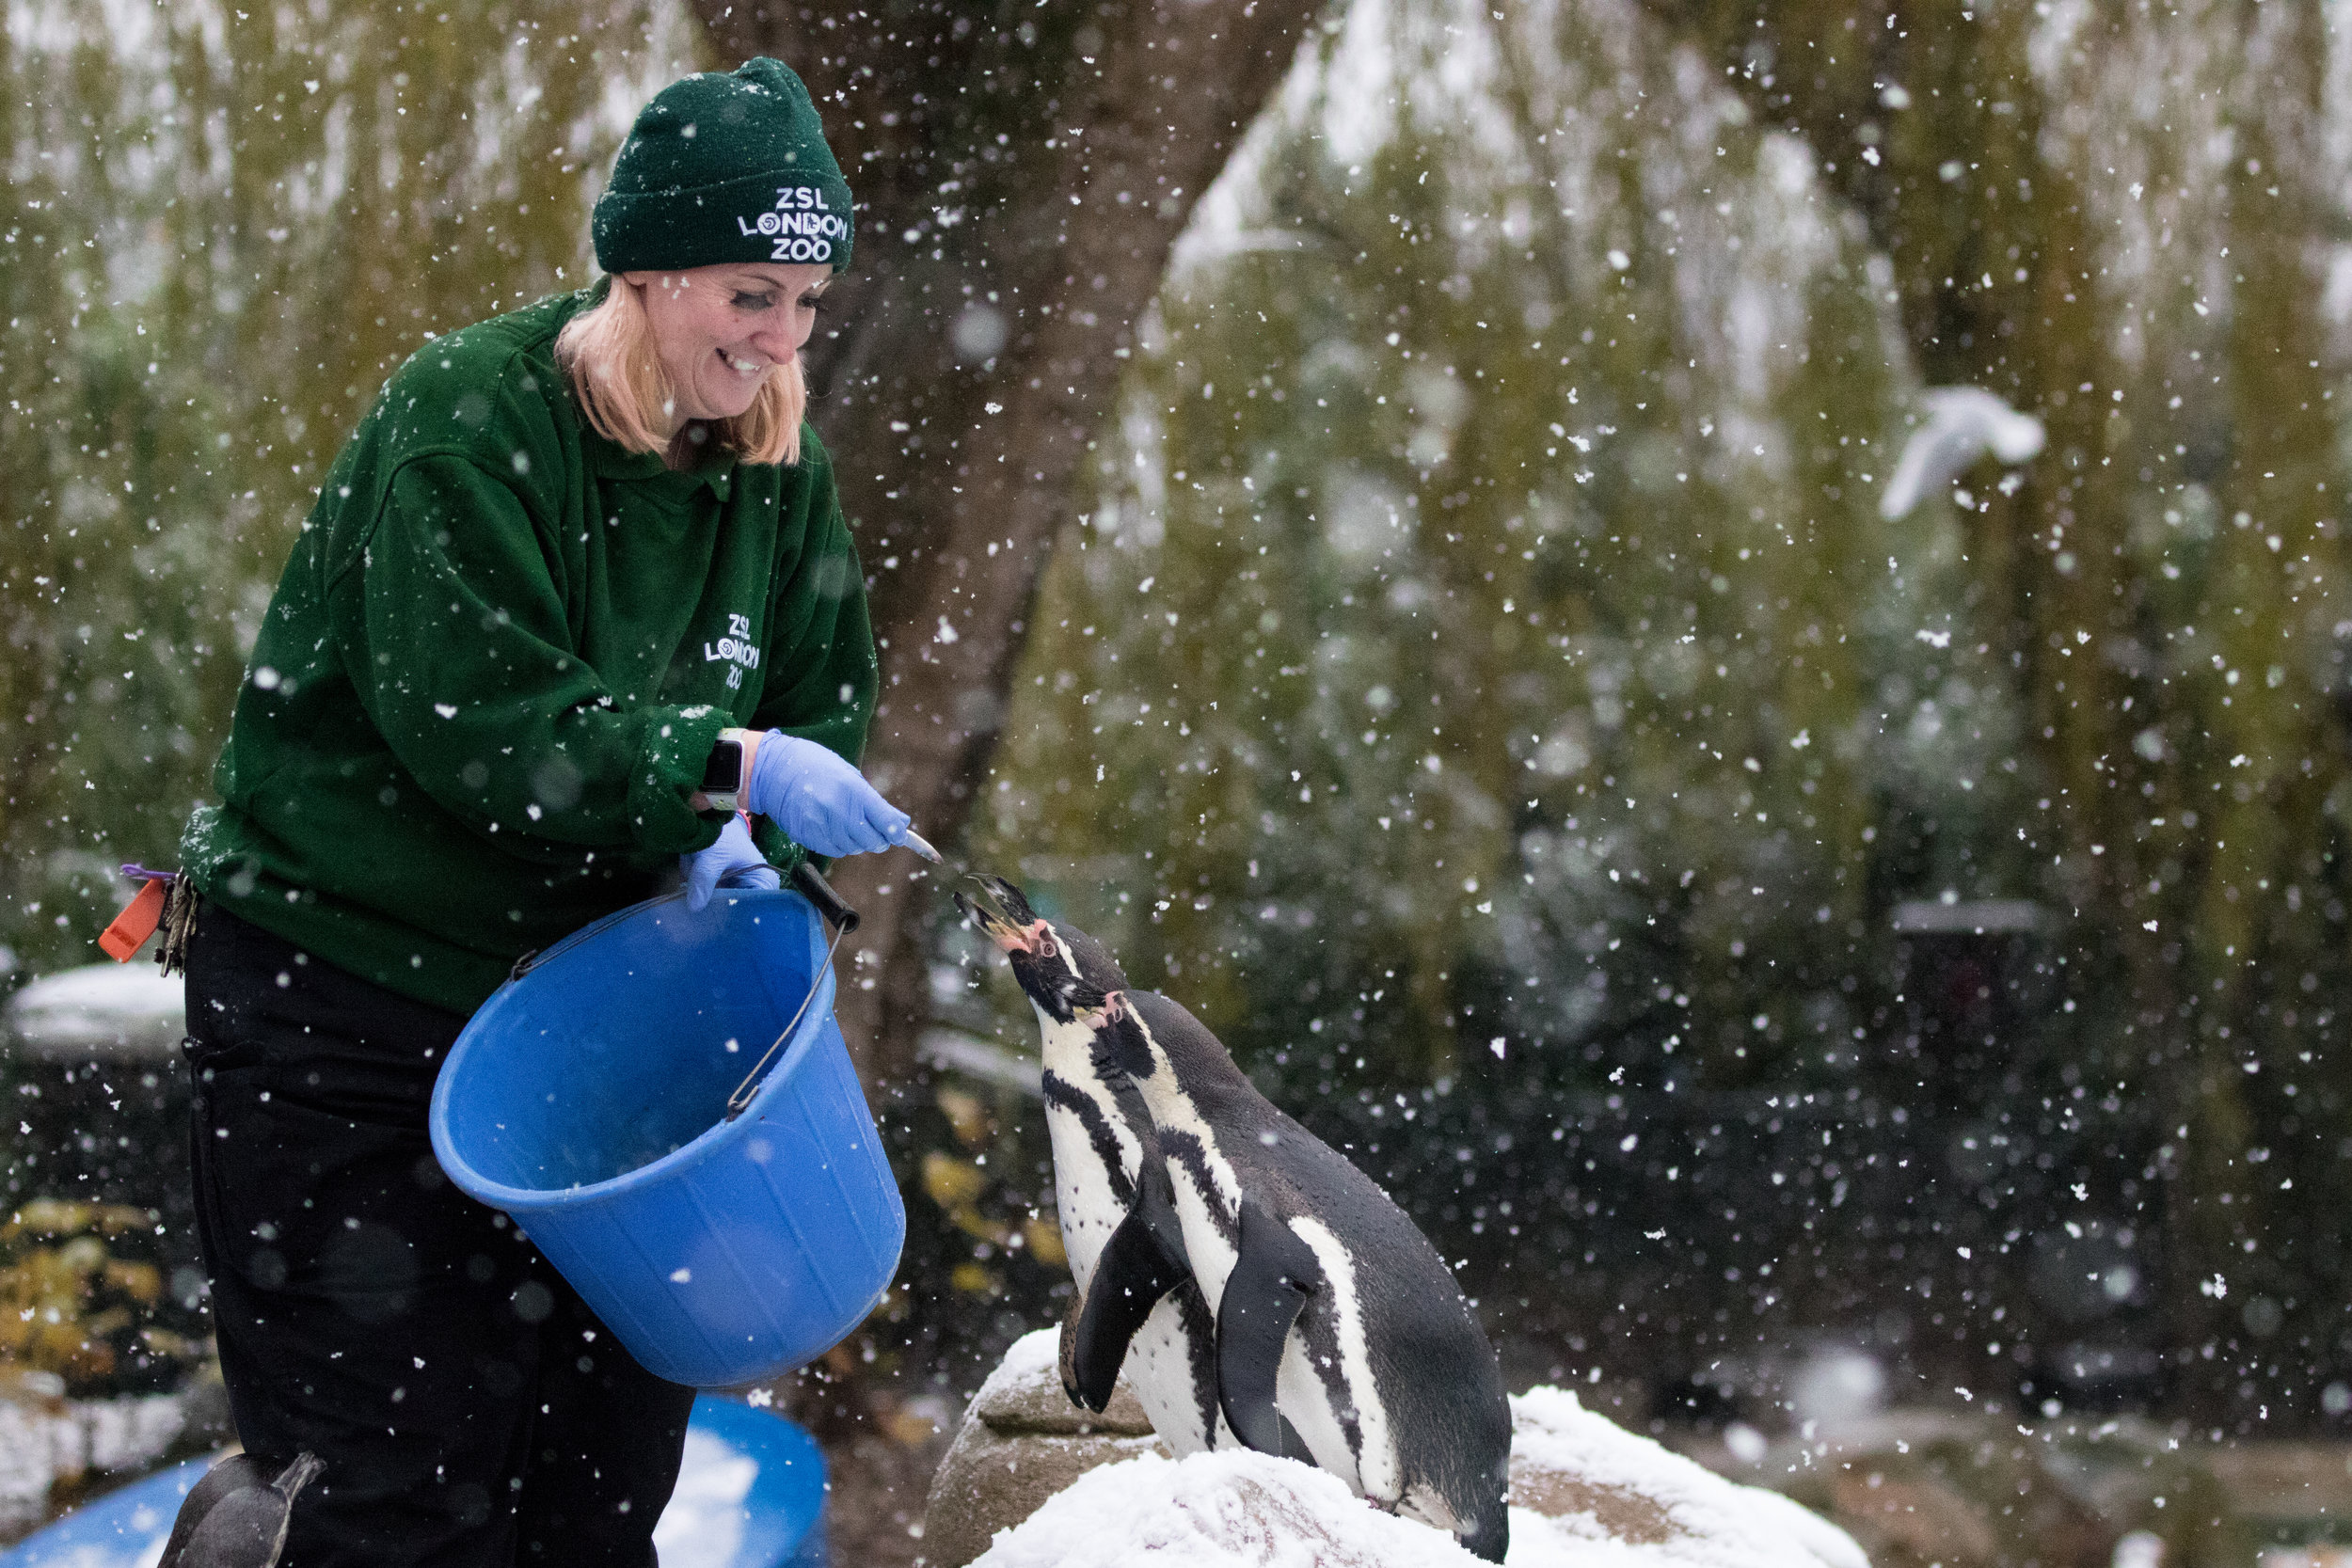 Penguins enjoy a feed in the snow at ZSL London Zoo (c) ZSL.jpg